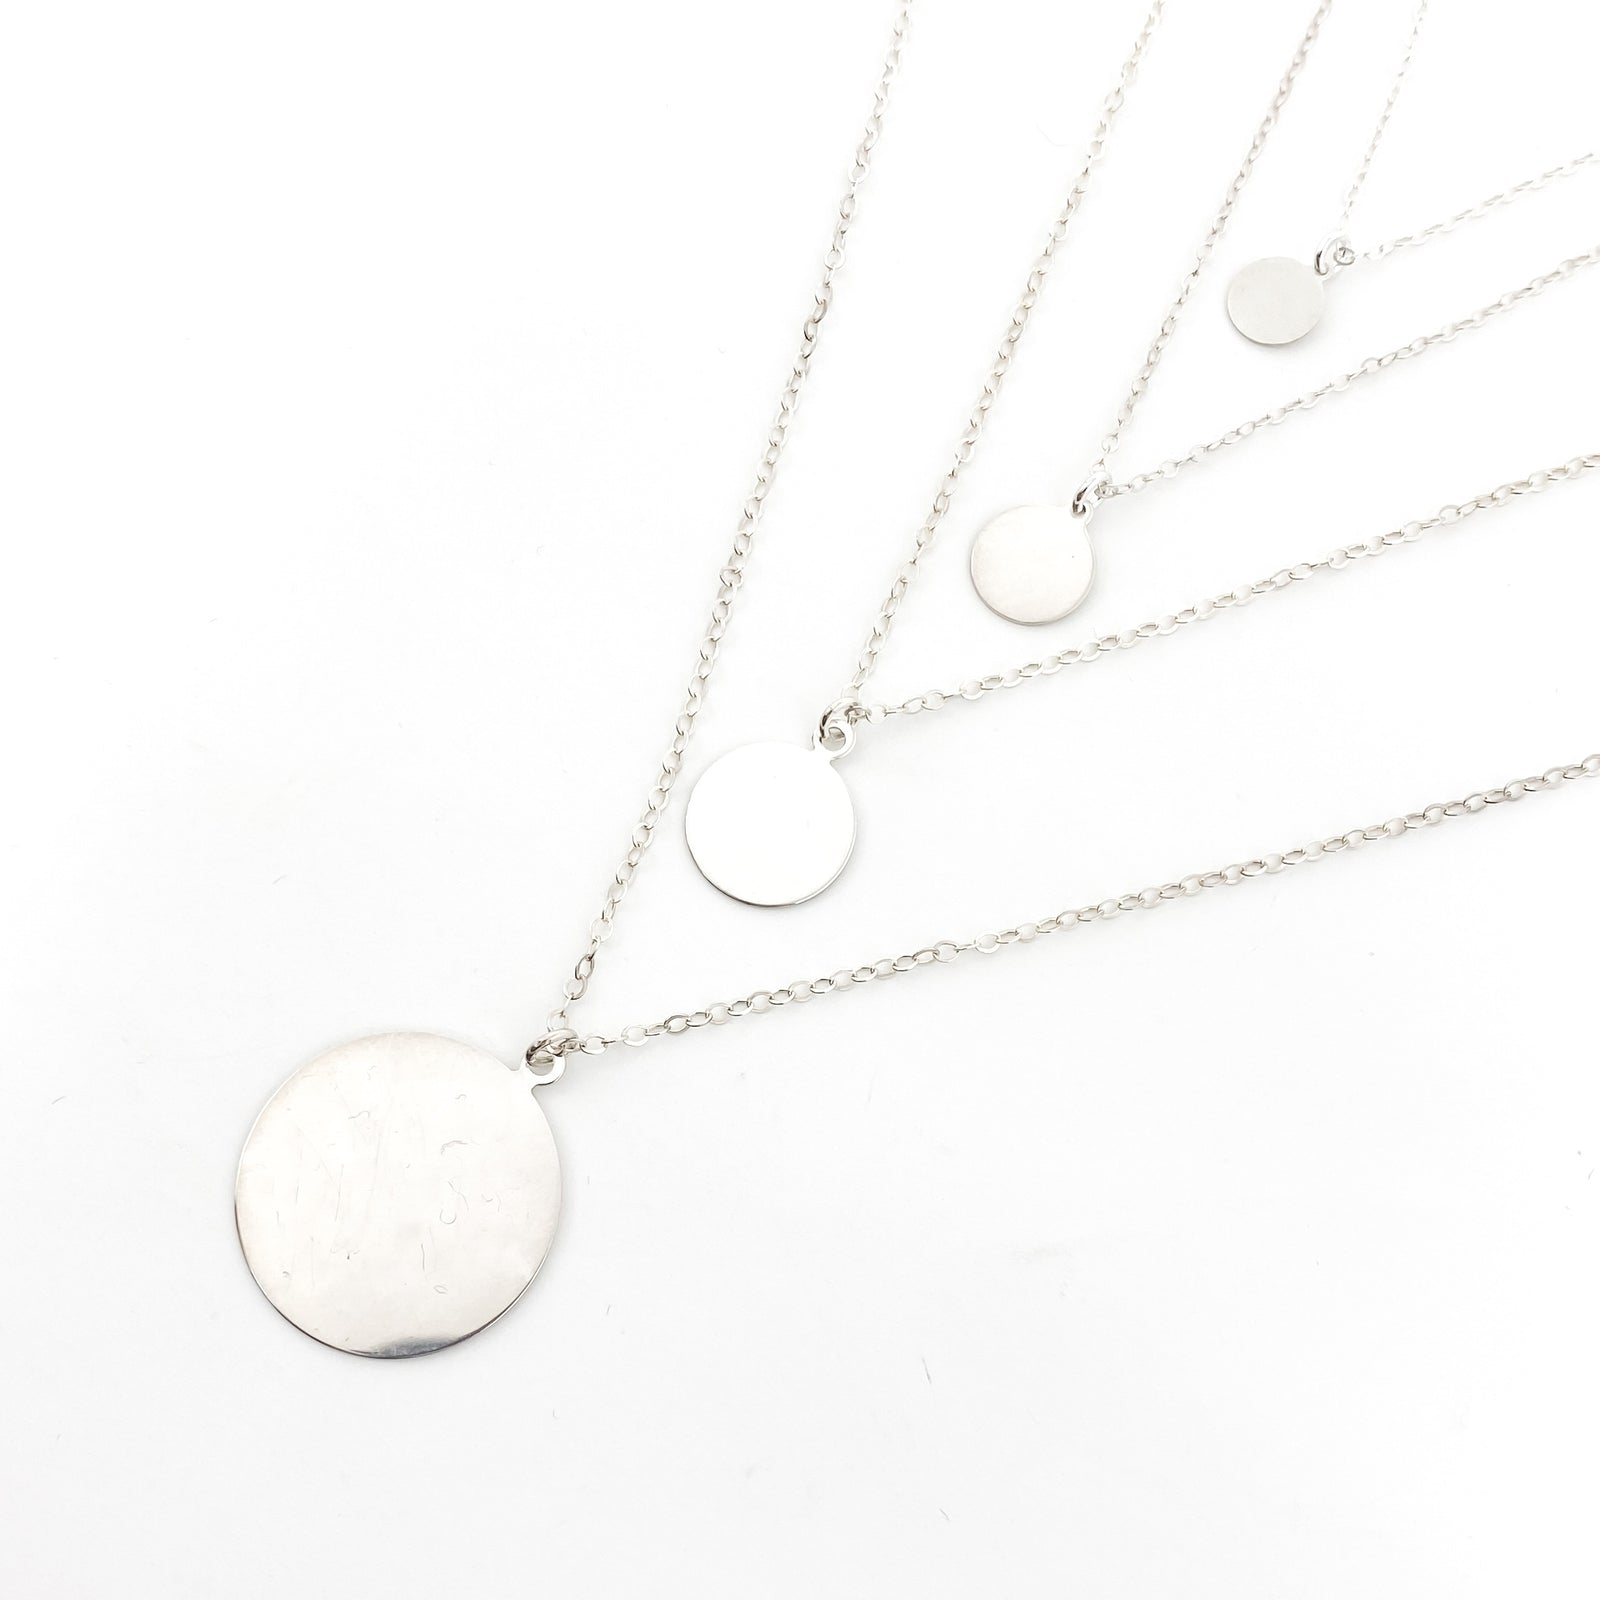 STERLING SILVER DISK NECKLACES | SIZE OPTIONS